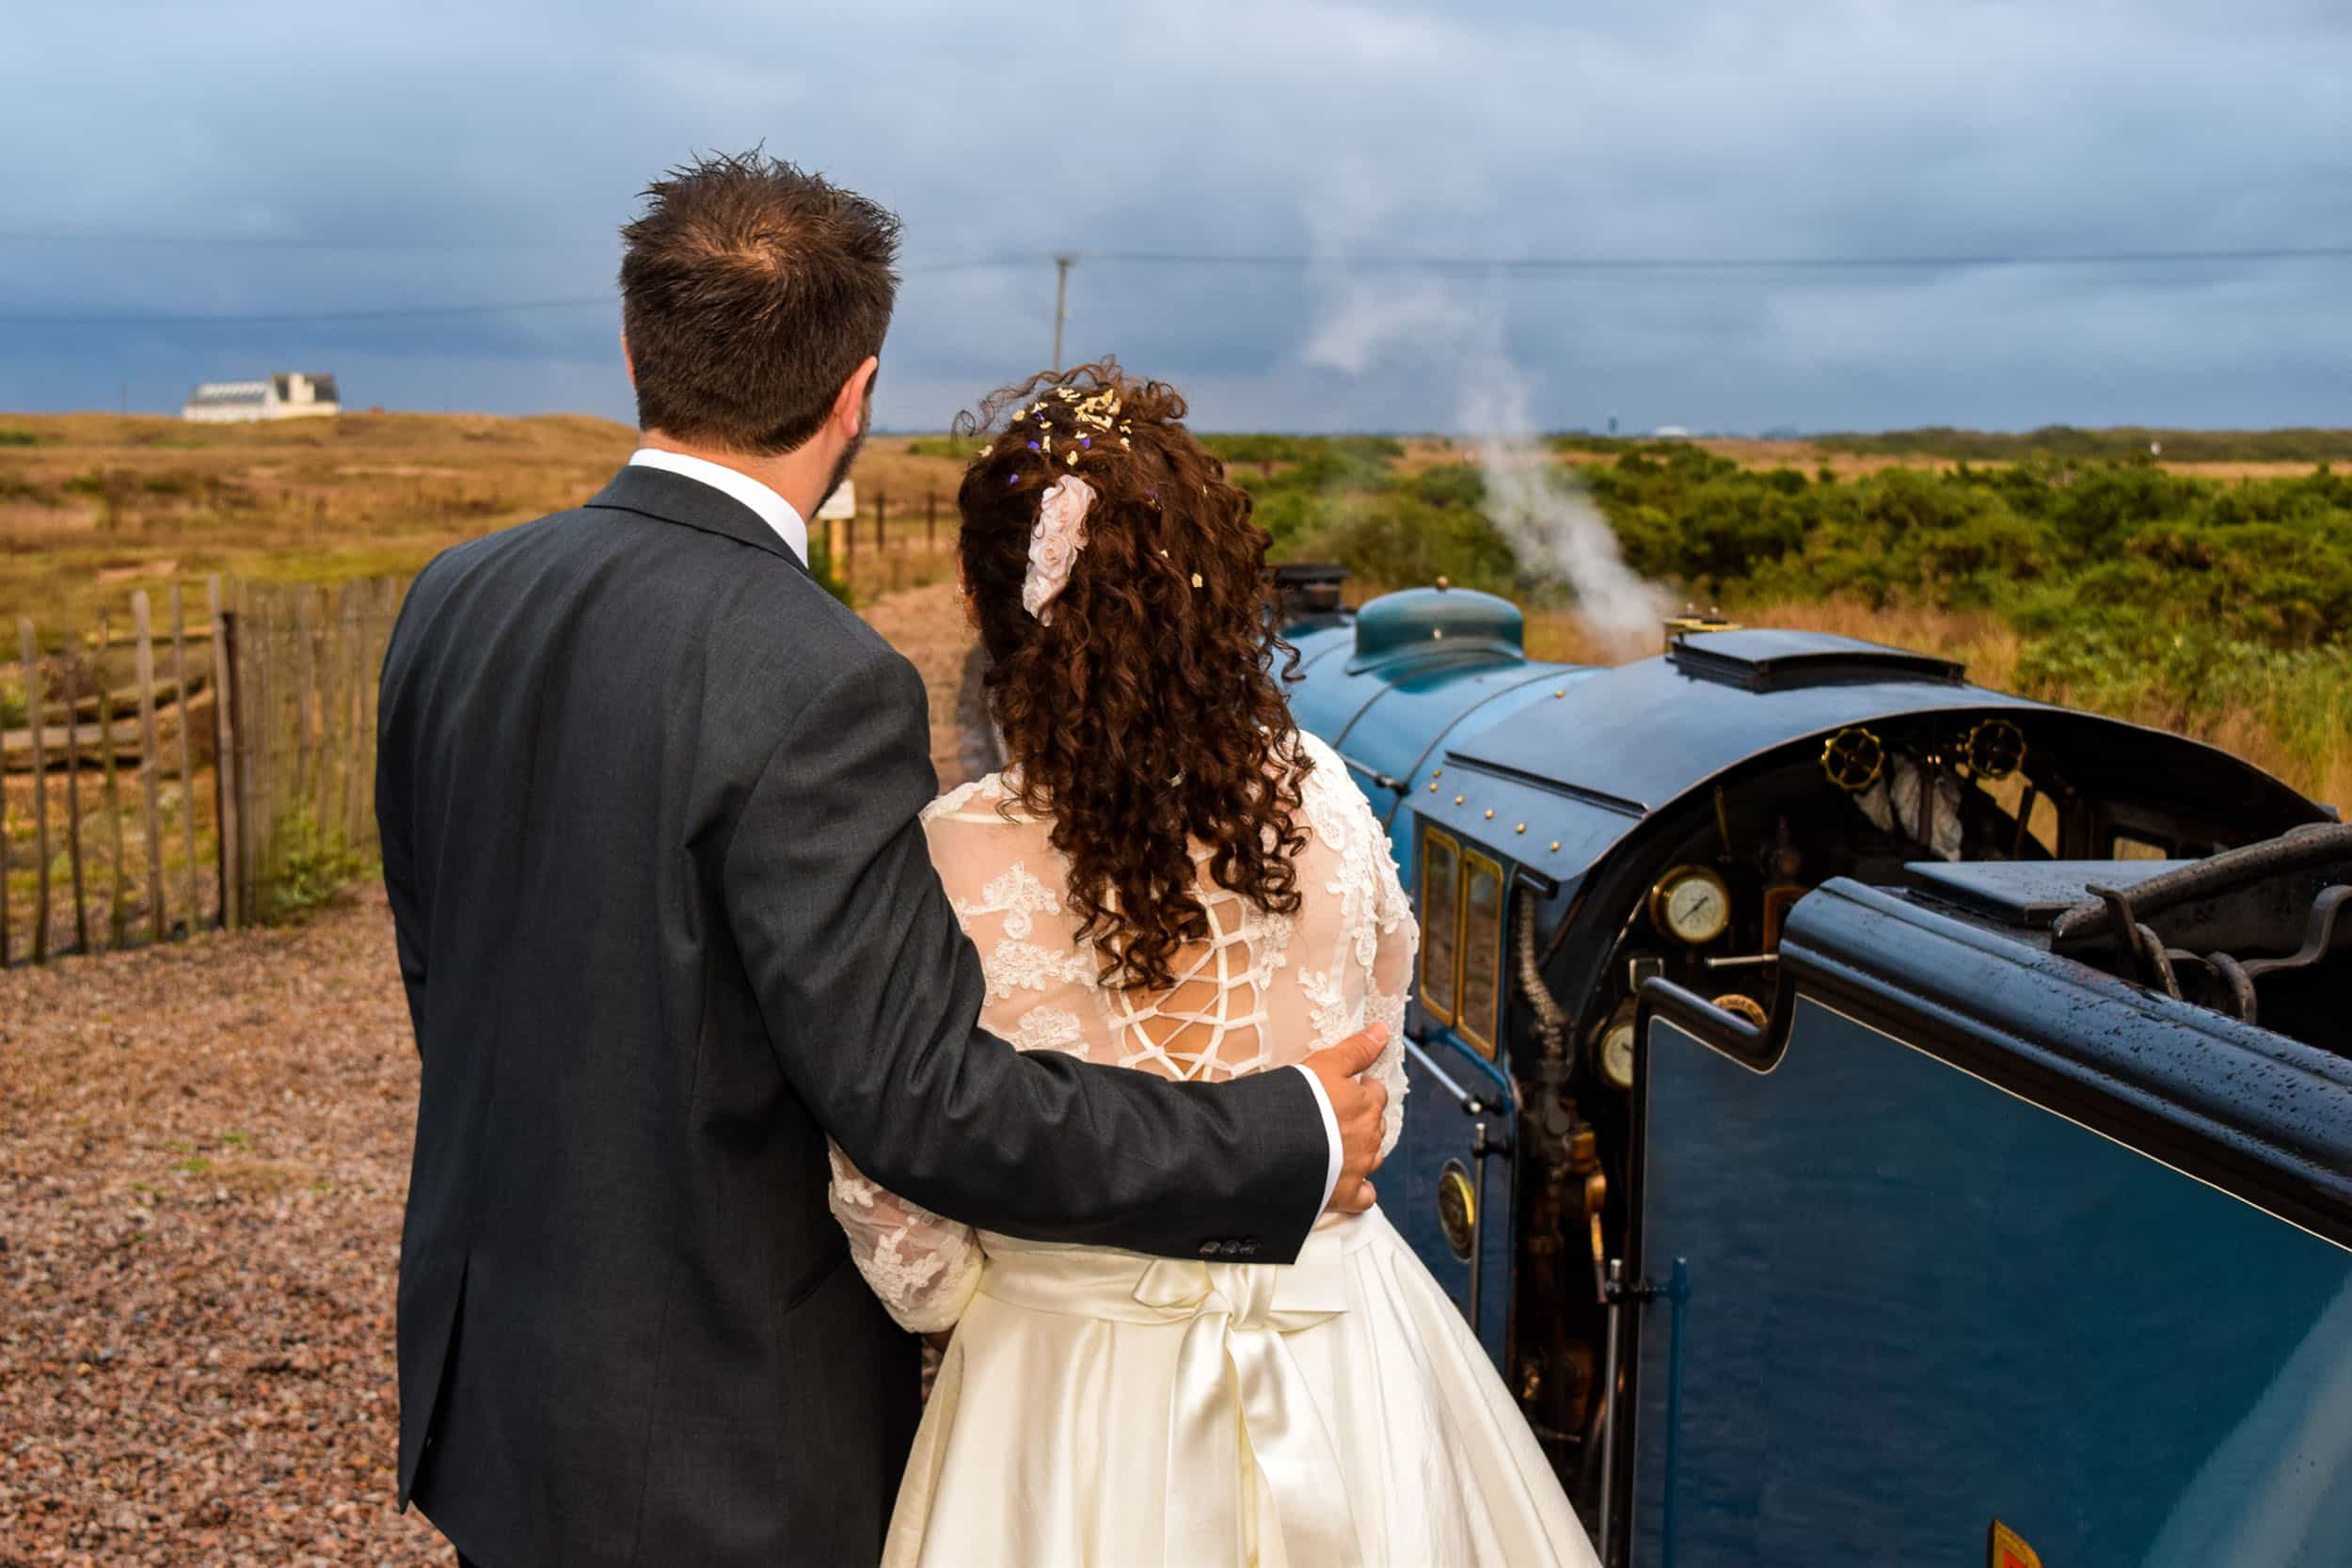 Weddings at Romney, Hythe & Dymchurch Railway